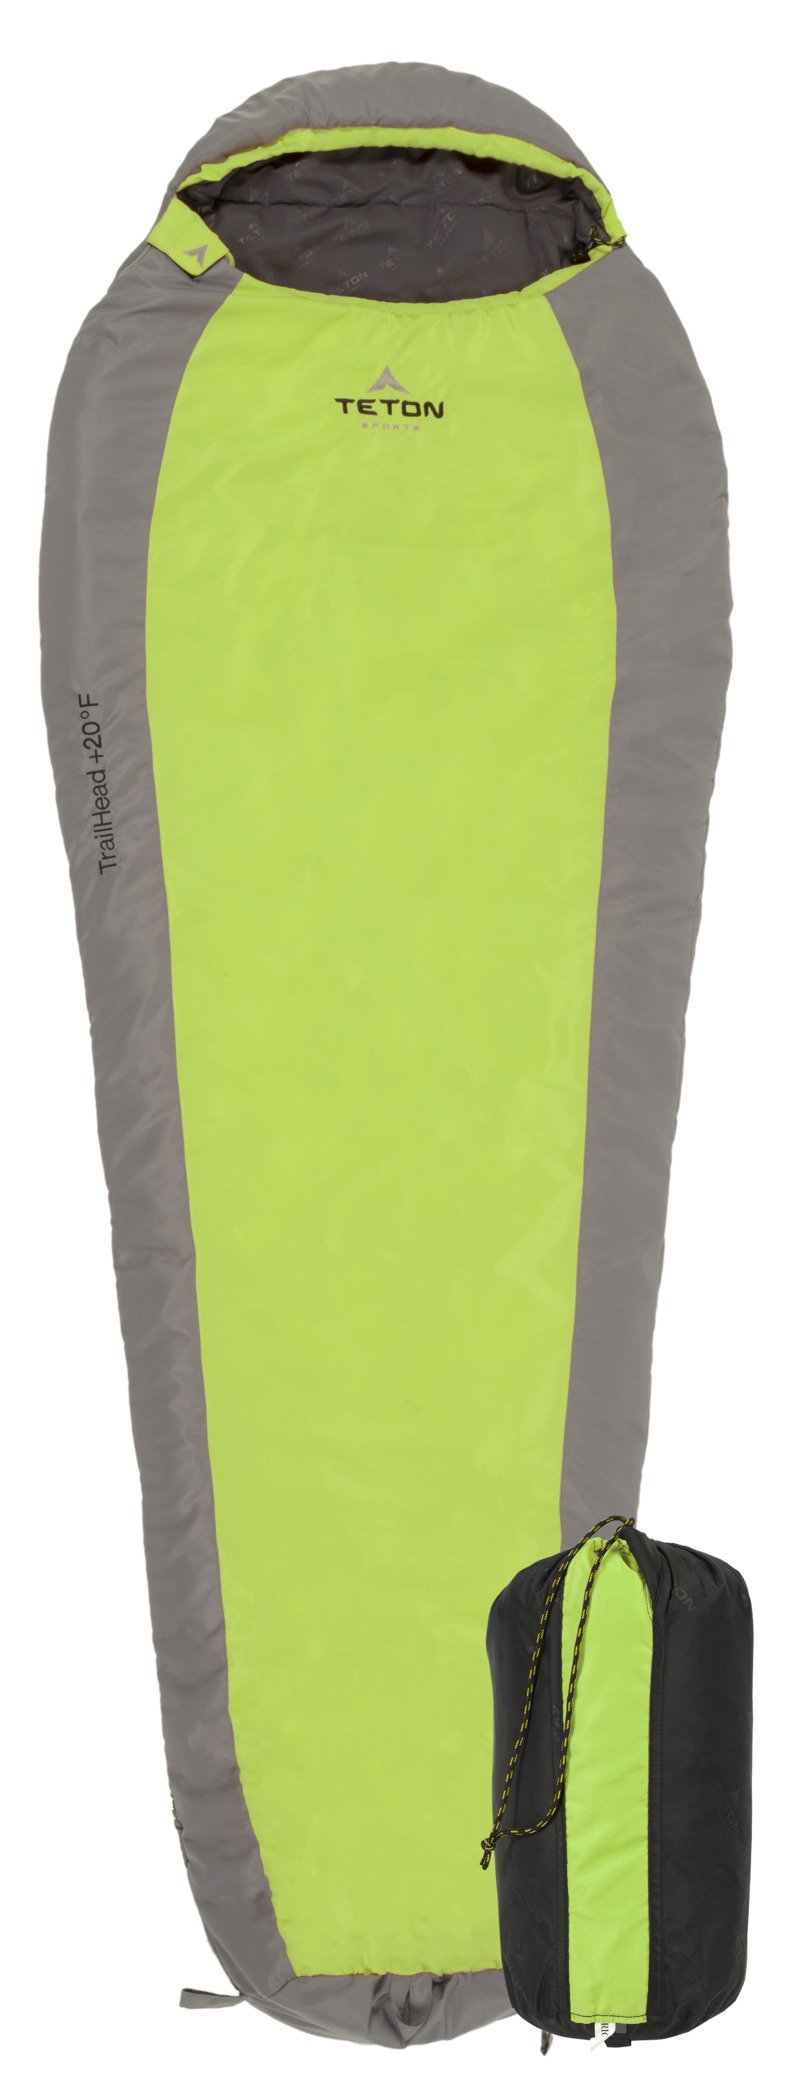 TETON Sports TrailHead Ultralight Mummy Sleeping Bag; Lightweight Backpacking Sleeping Bag for Hiking and Camping Outdoors; Stuff Sack Included; Never Roll Your Sleeping Bag Again; Green/Grey by TETON Sports